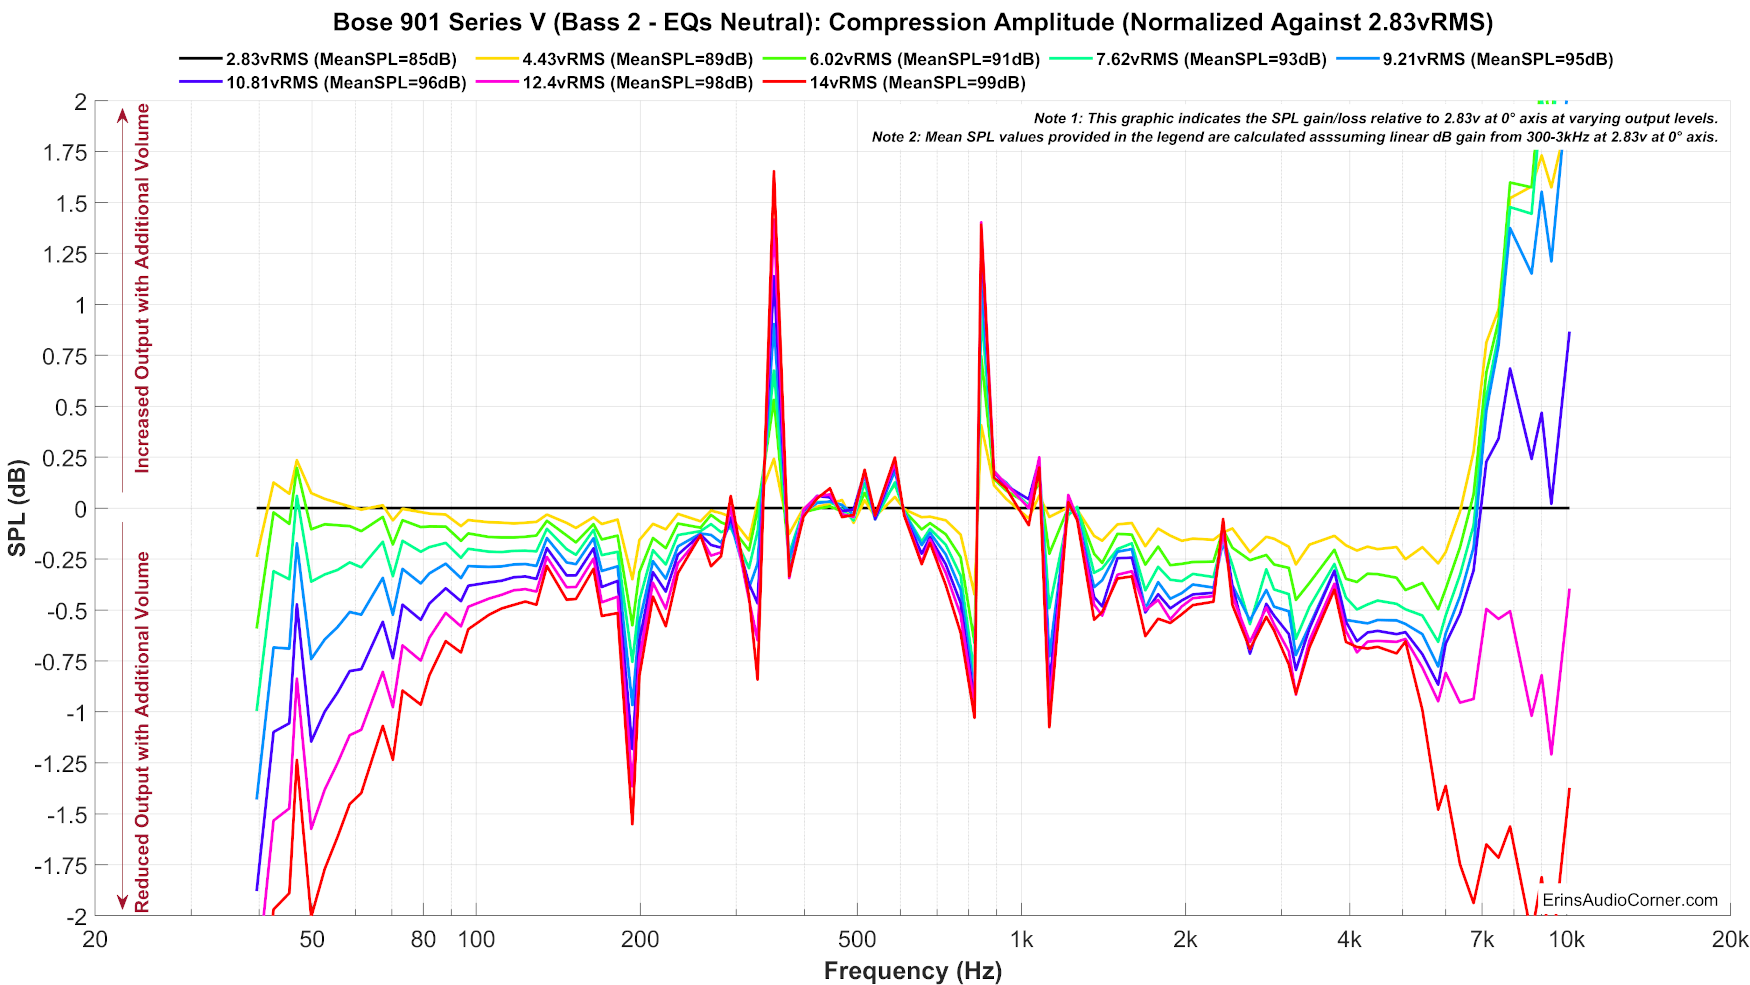 Bose%20901%20Series%20V%20(Bass%202%20-%20EQs%20Neutral)_Compression_Normalized.png